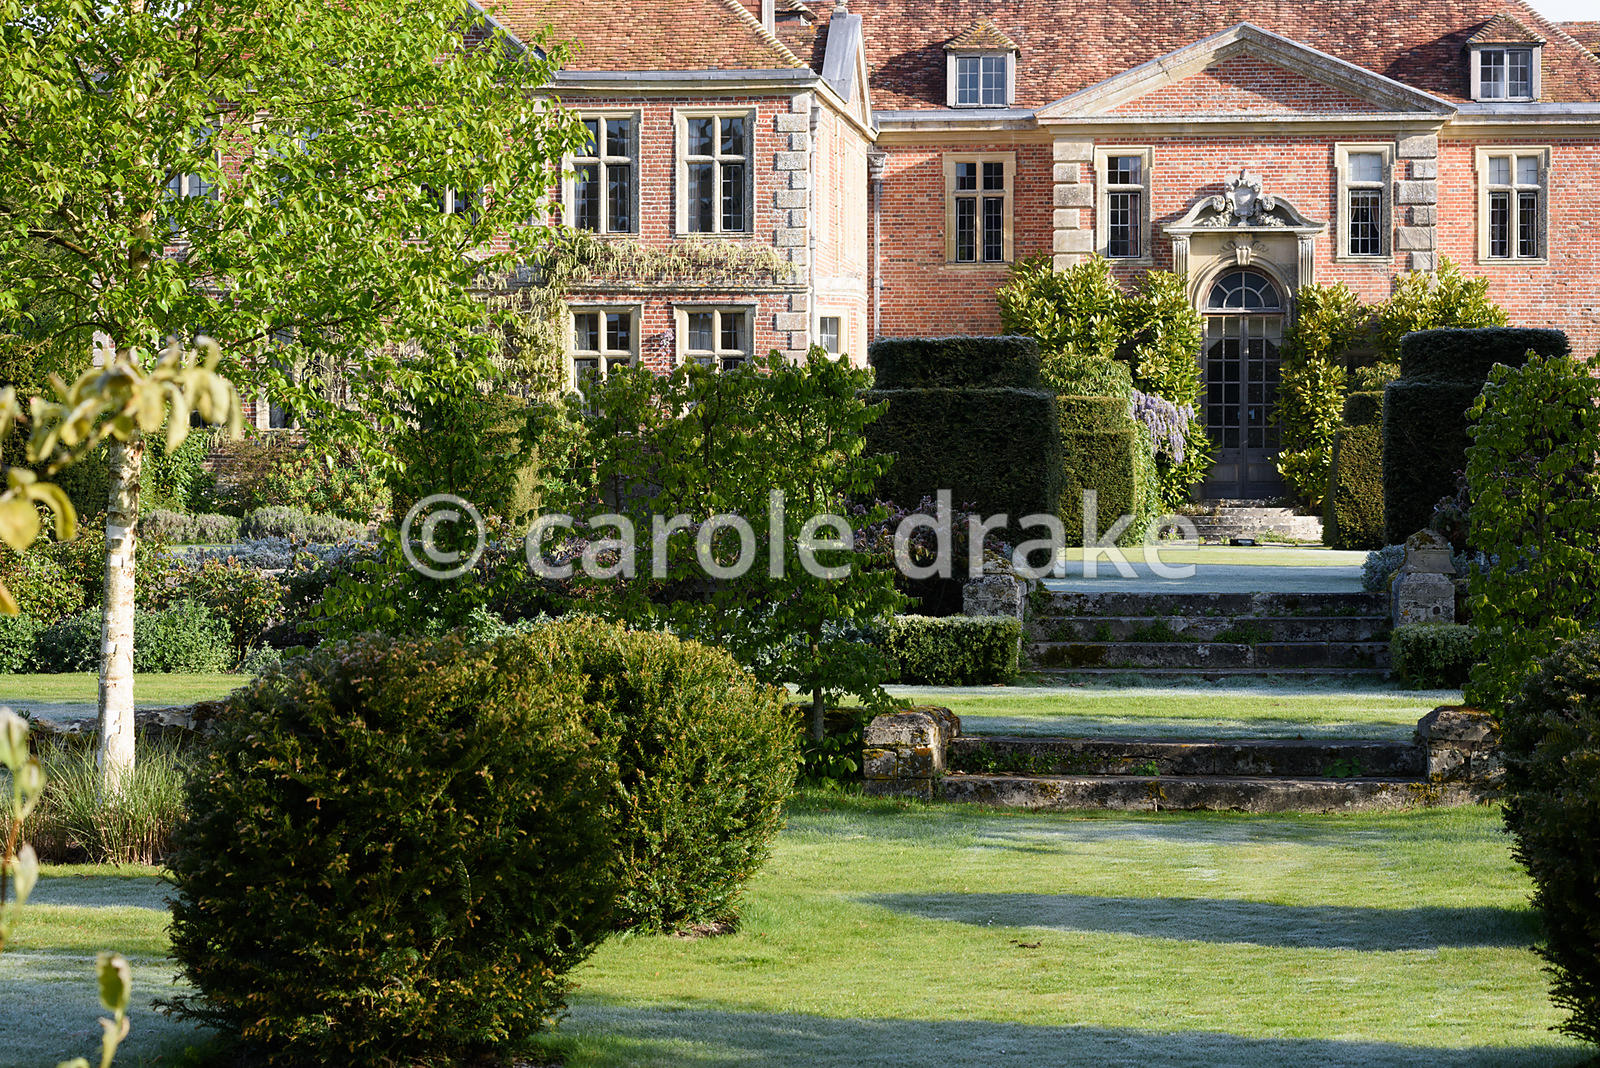 Formal garden around Heale House, Middle Woodford, Wiltshire with clipped yews, white stemmed birches and beds of miscanthus